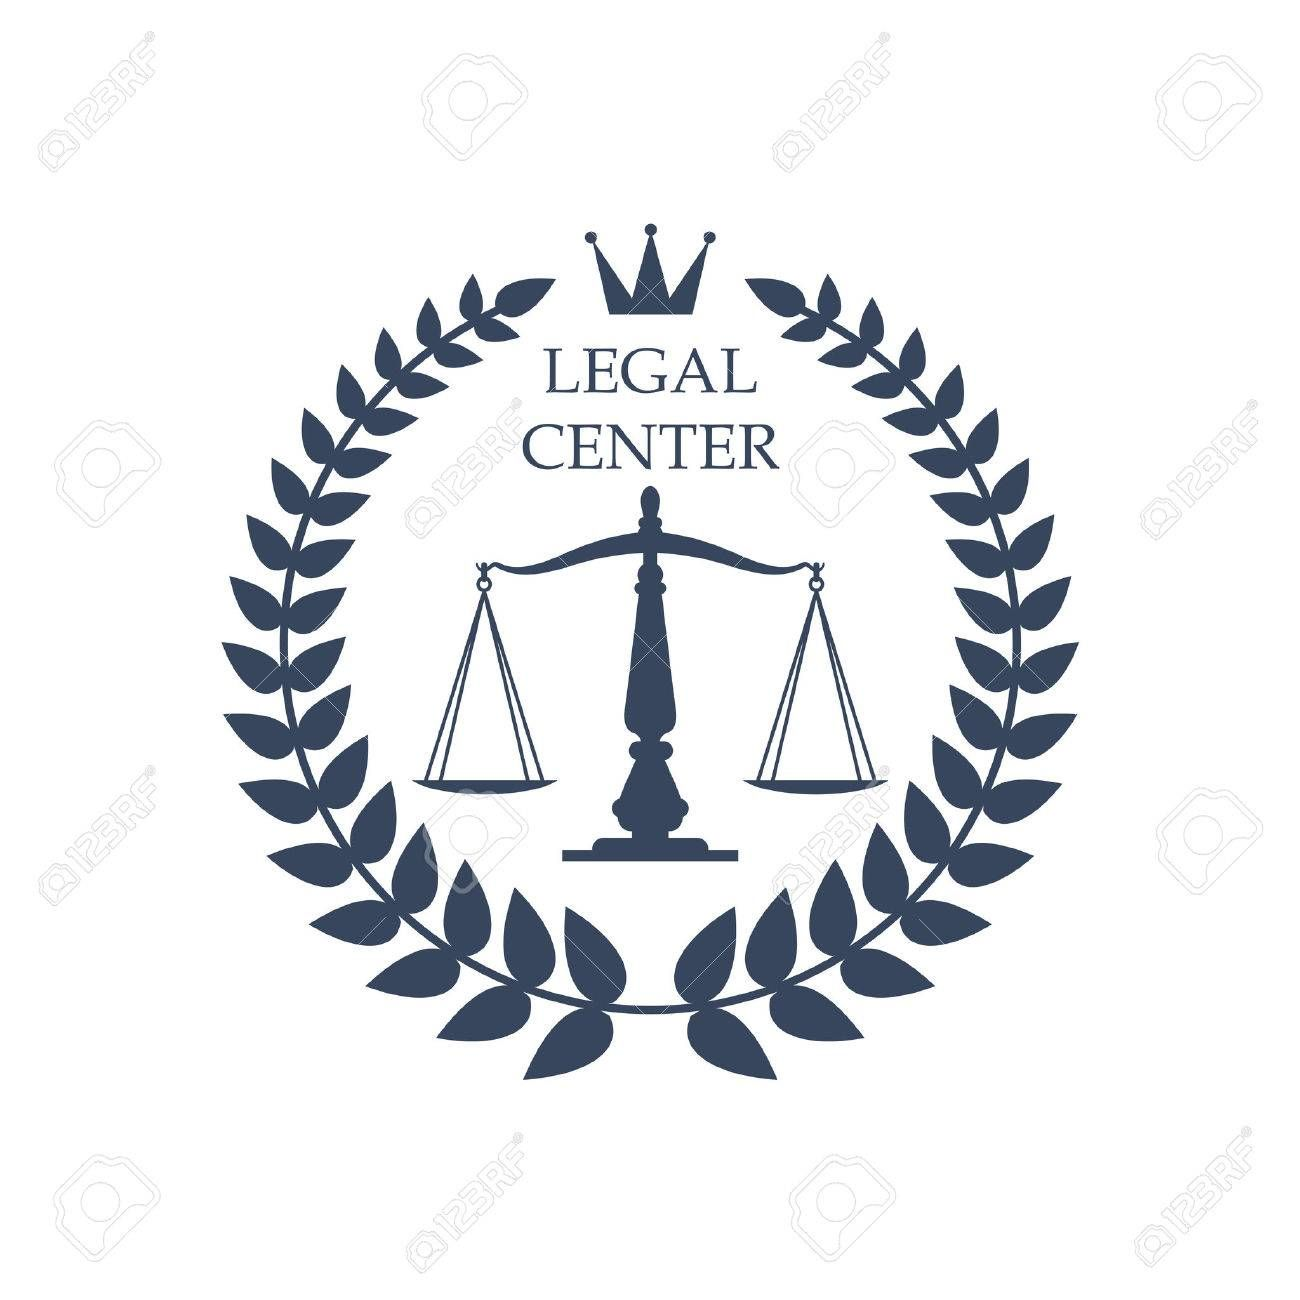 Juridical Or Legal Advocacy Center Icon With Scales Of Justice Symbol Heraldic Laurel Wreath And Crown Vector Badge Or Symbols Justice Symbol Art Inspiration